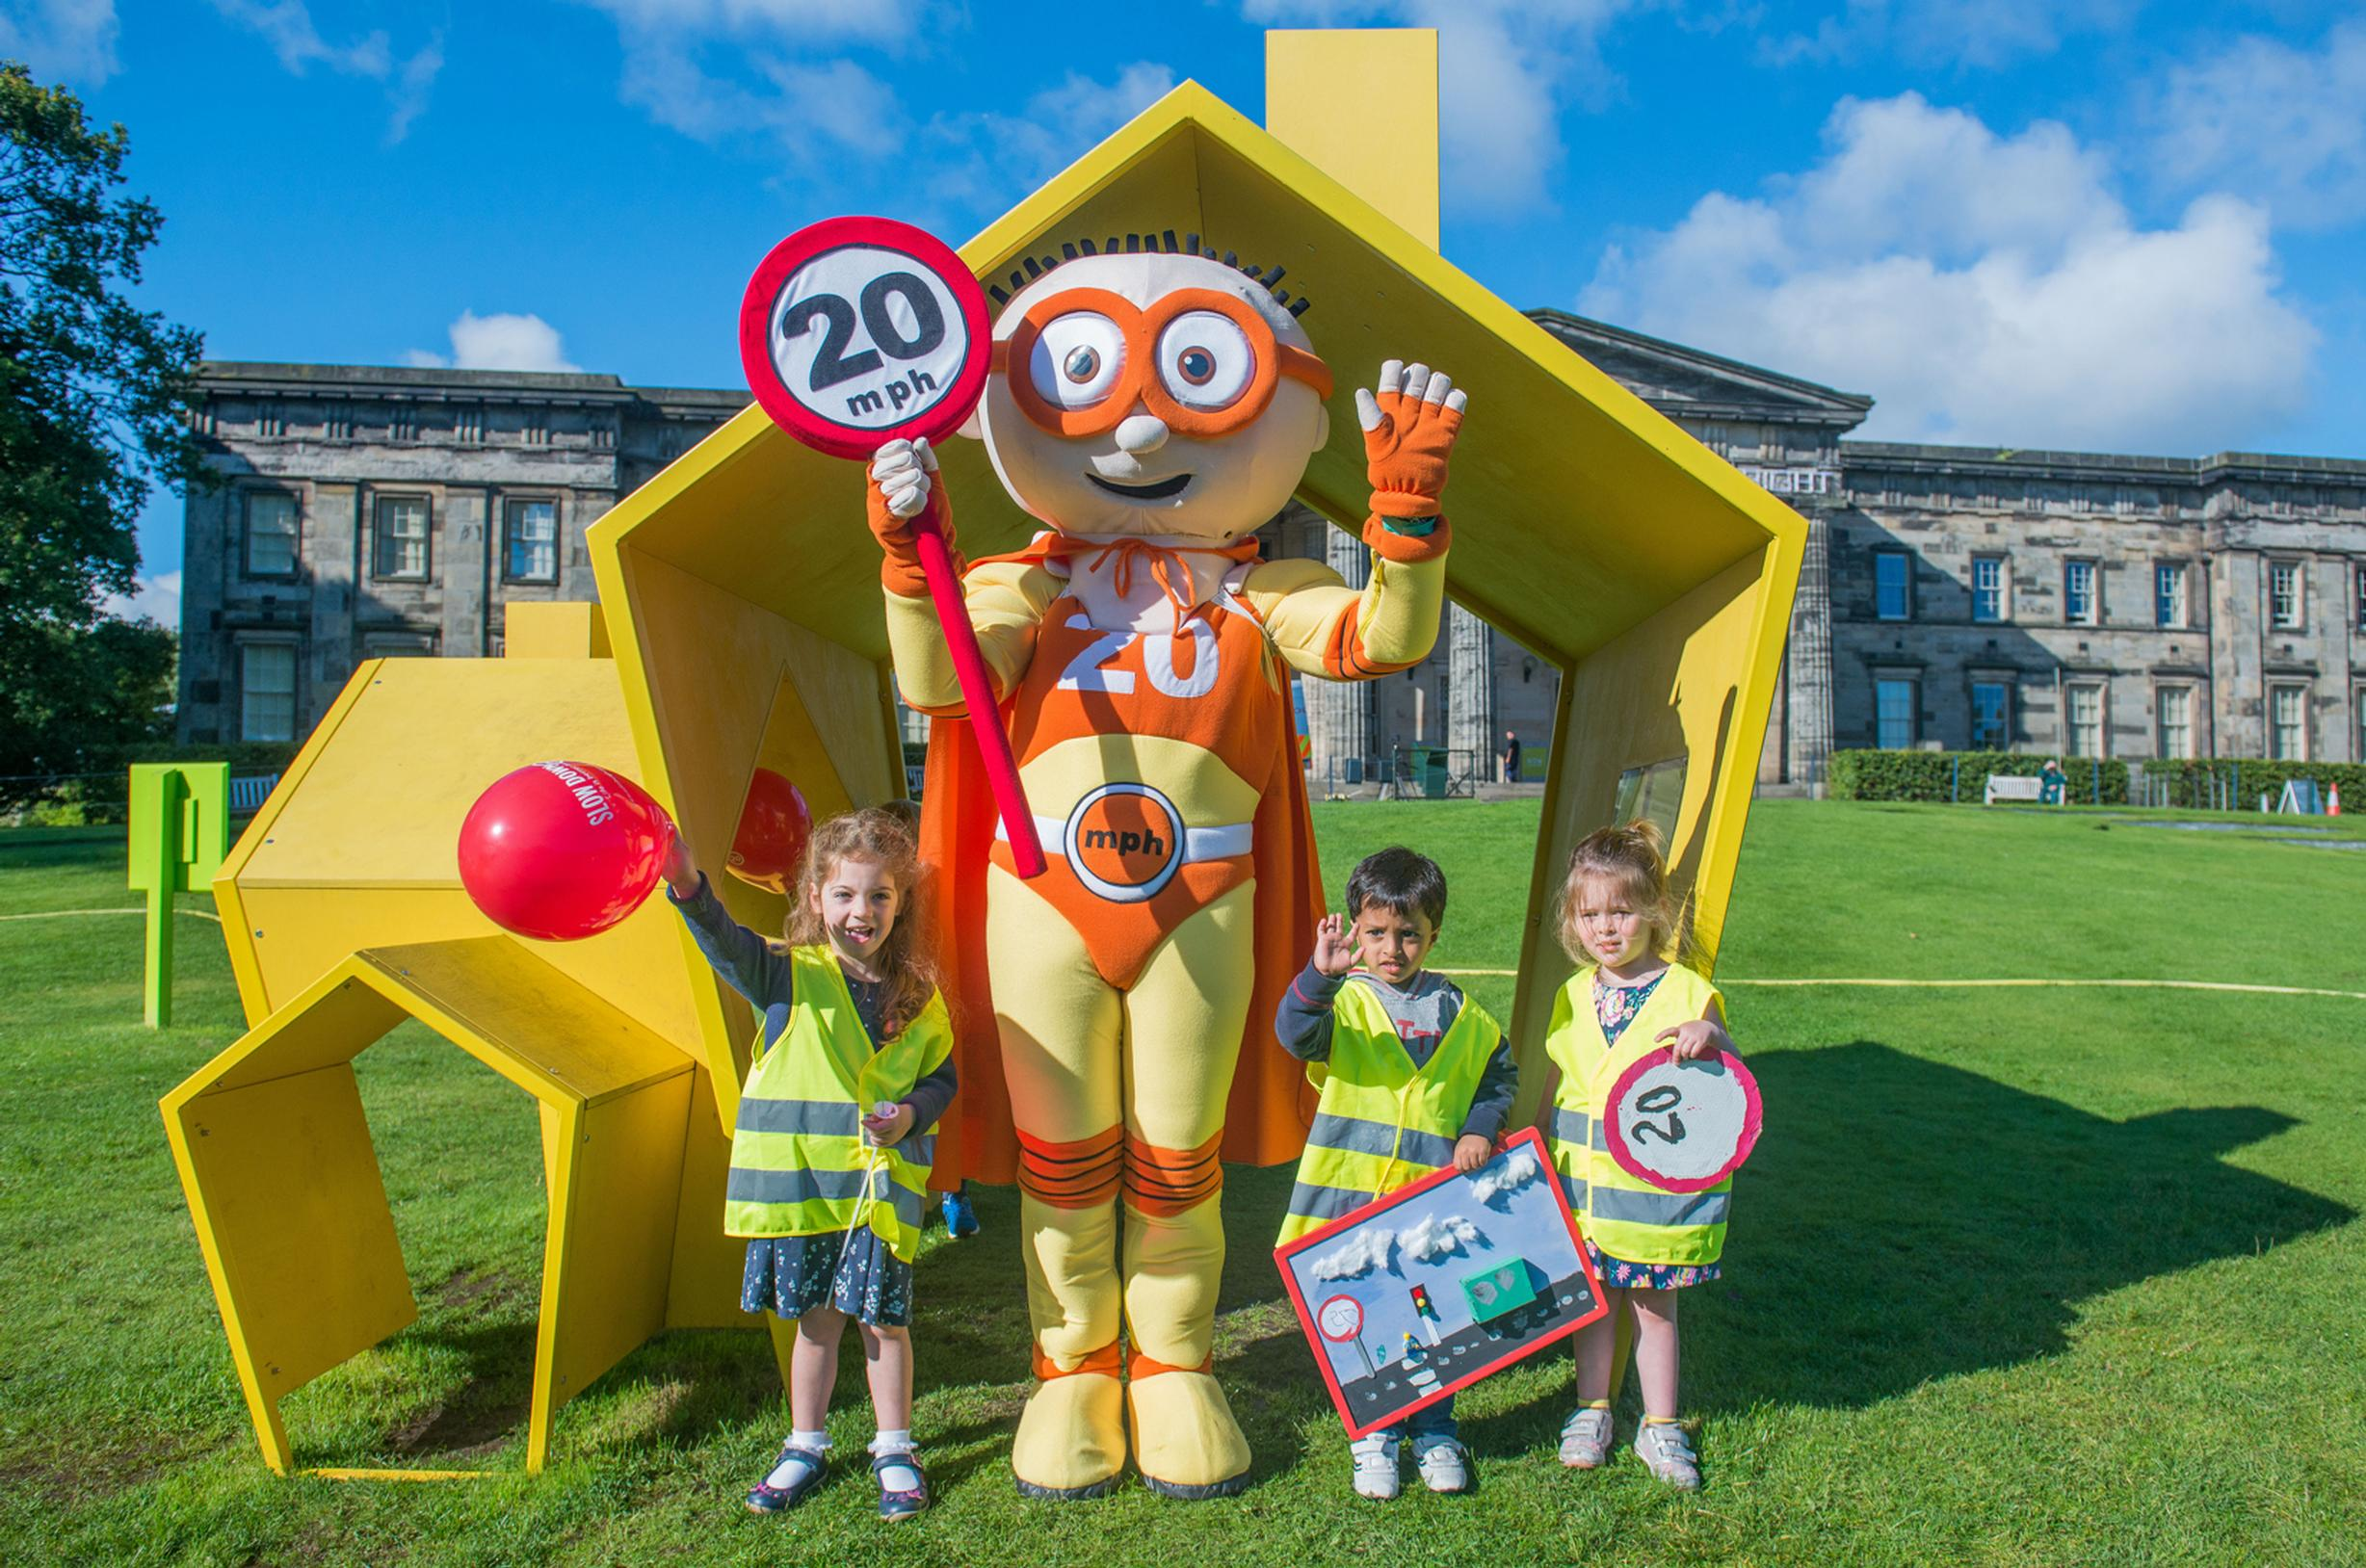 Youngsters from the Murrayfield Nursery showed off their 20mph speed limit themed artwork at the Scottish National Gallery of Modern Art